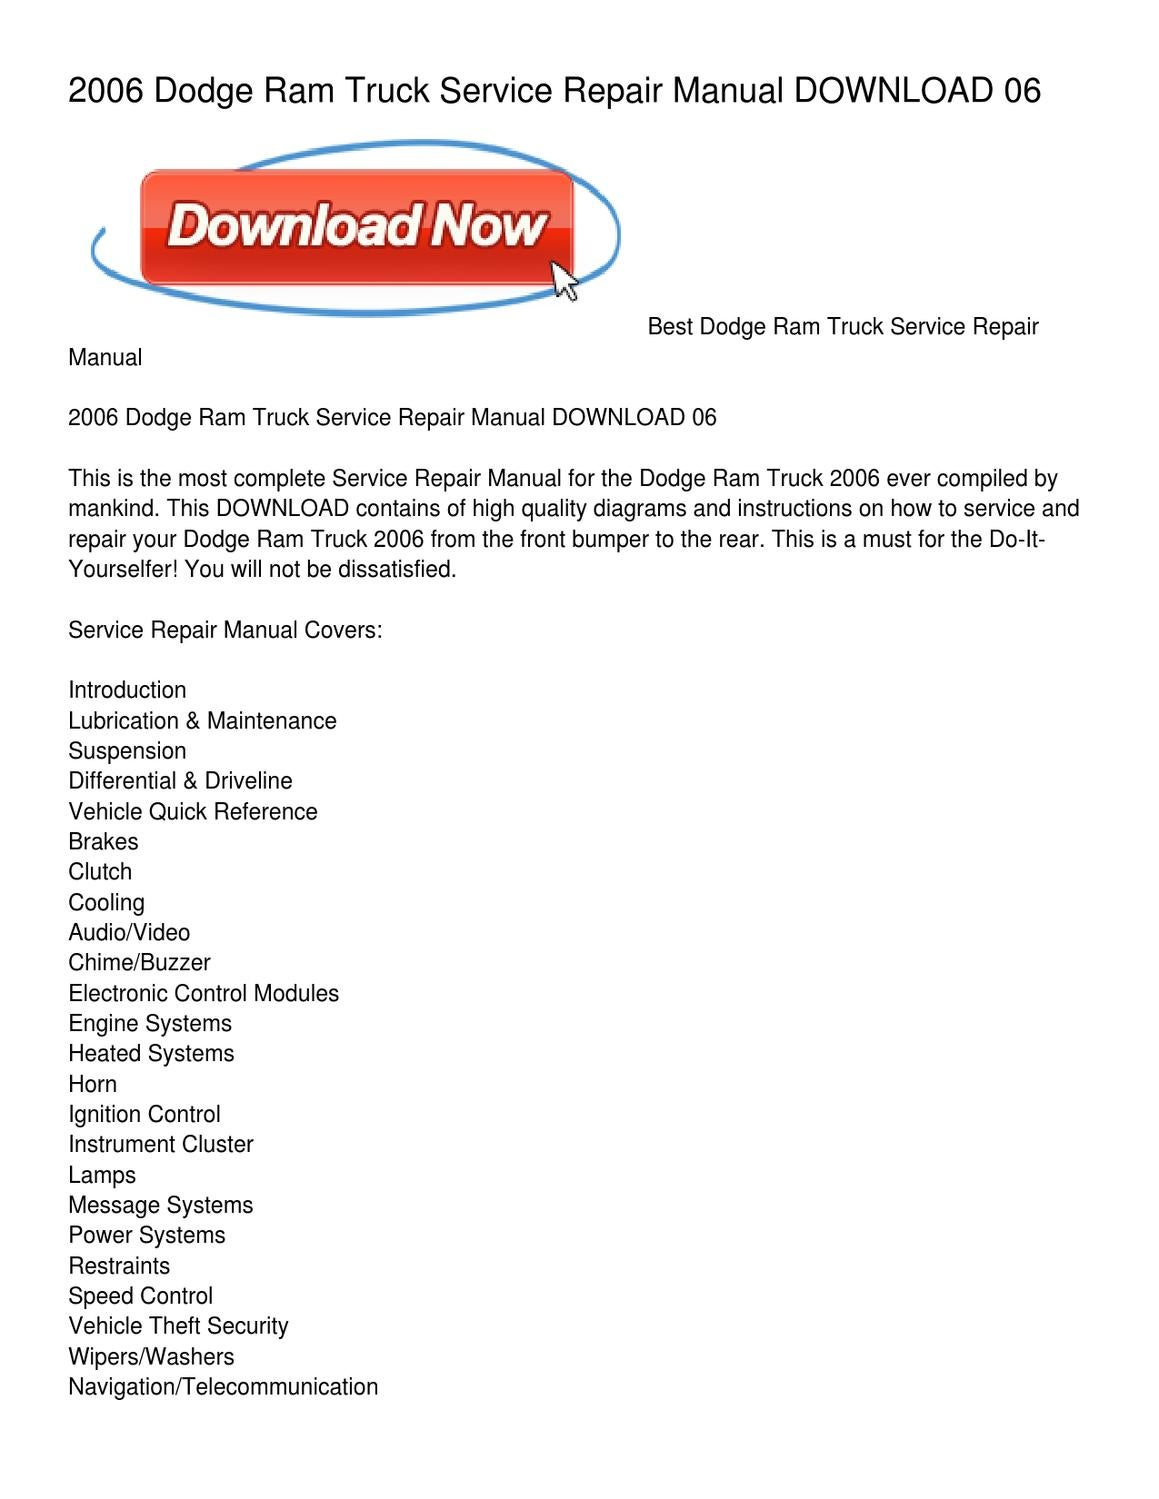 hight resolution of 2006 dodge ram truck service repair manual download 06 by wanda seamon issuu